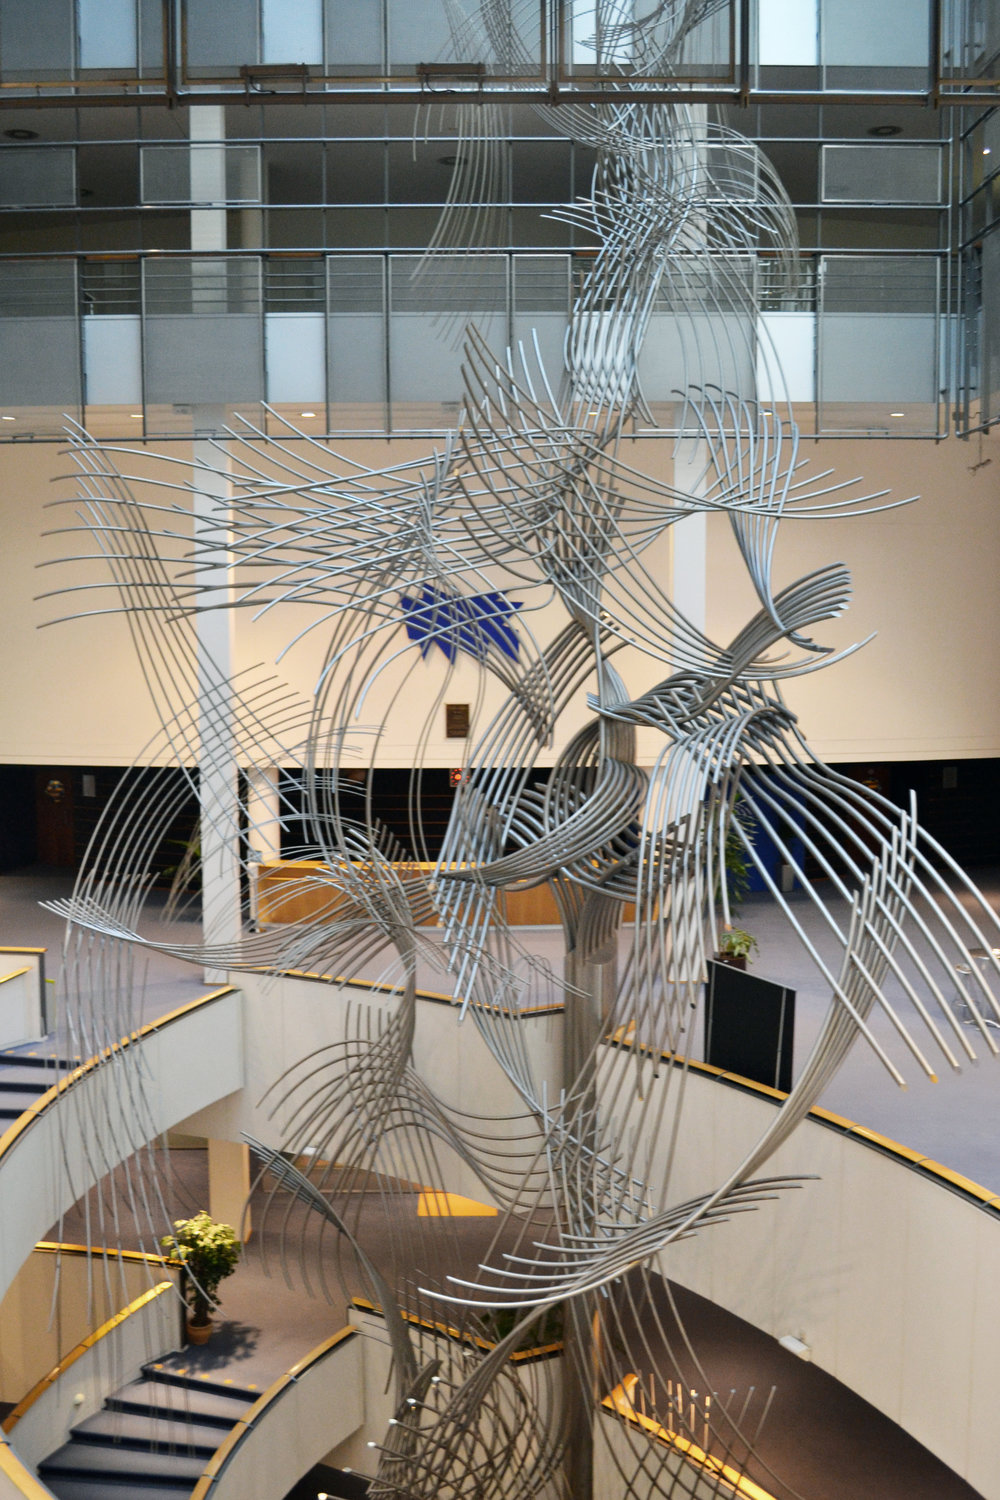 Sculpture at the centre of the PHS building intended to represent the connections between all European people